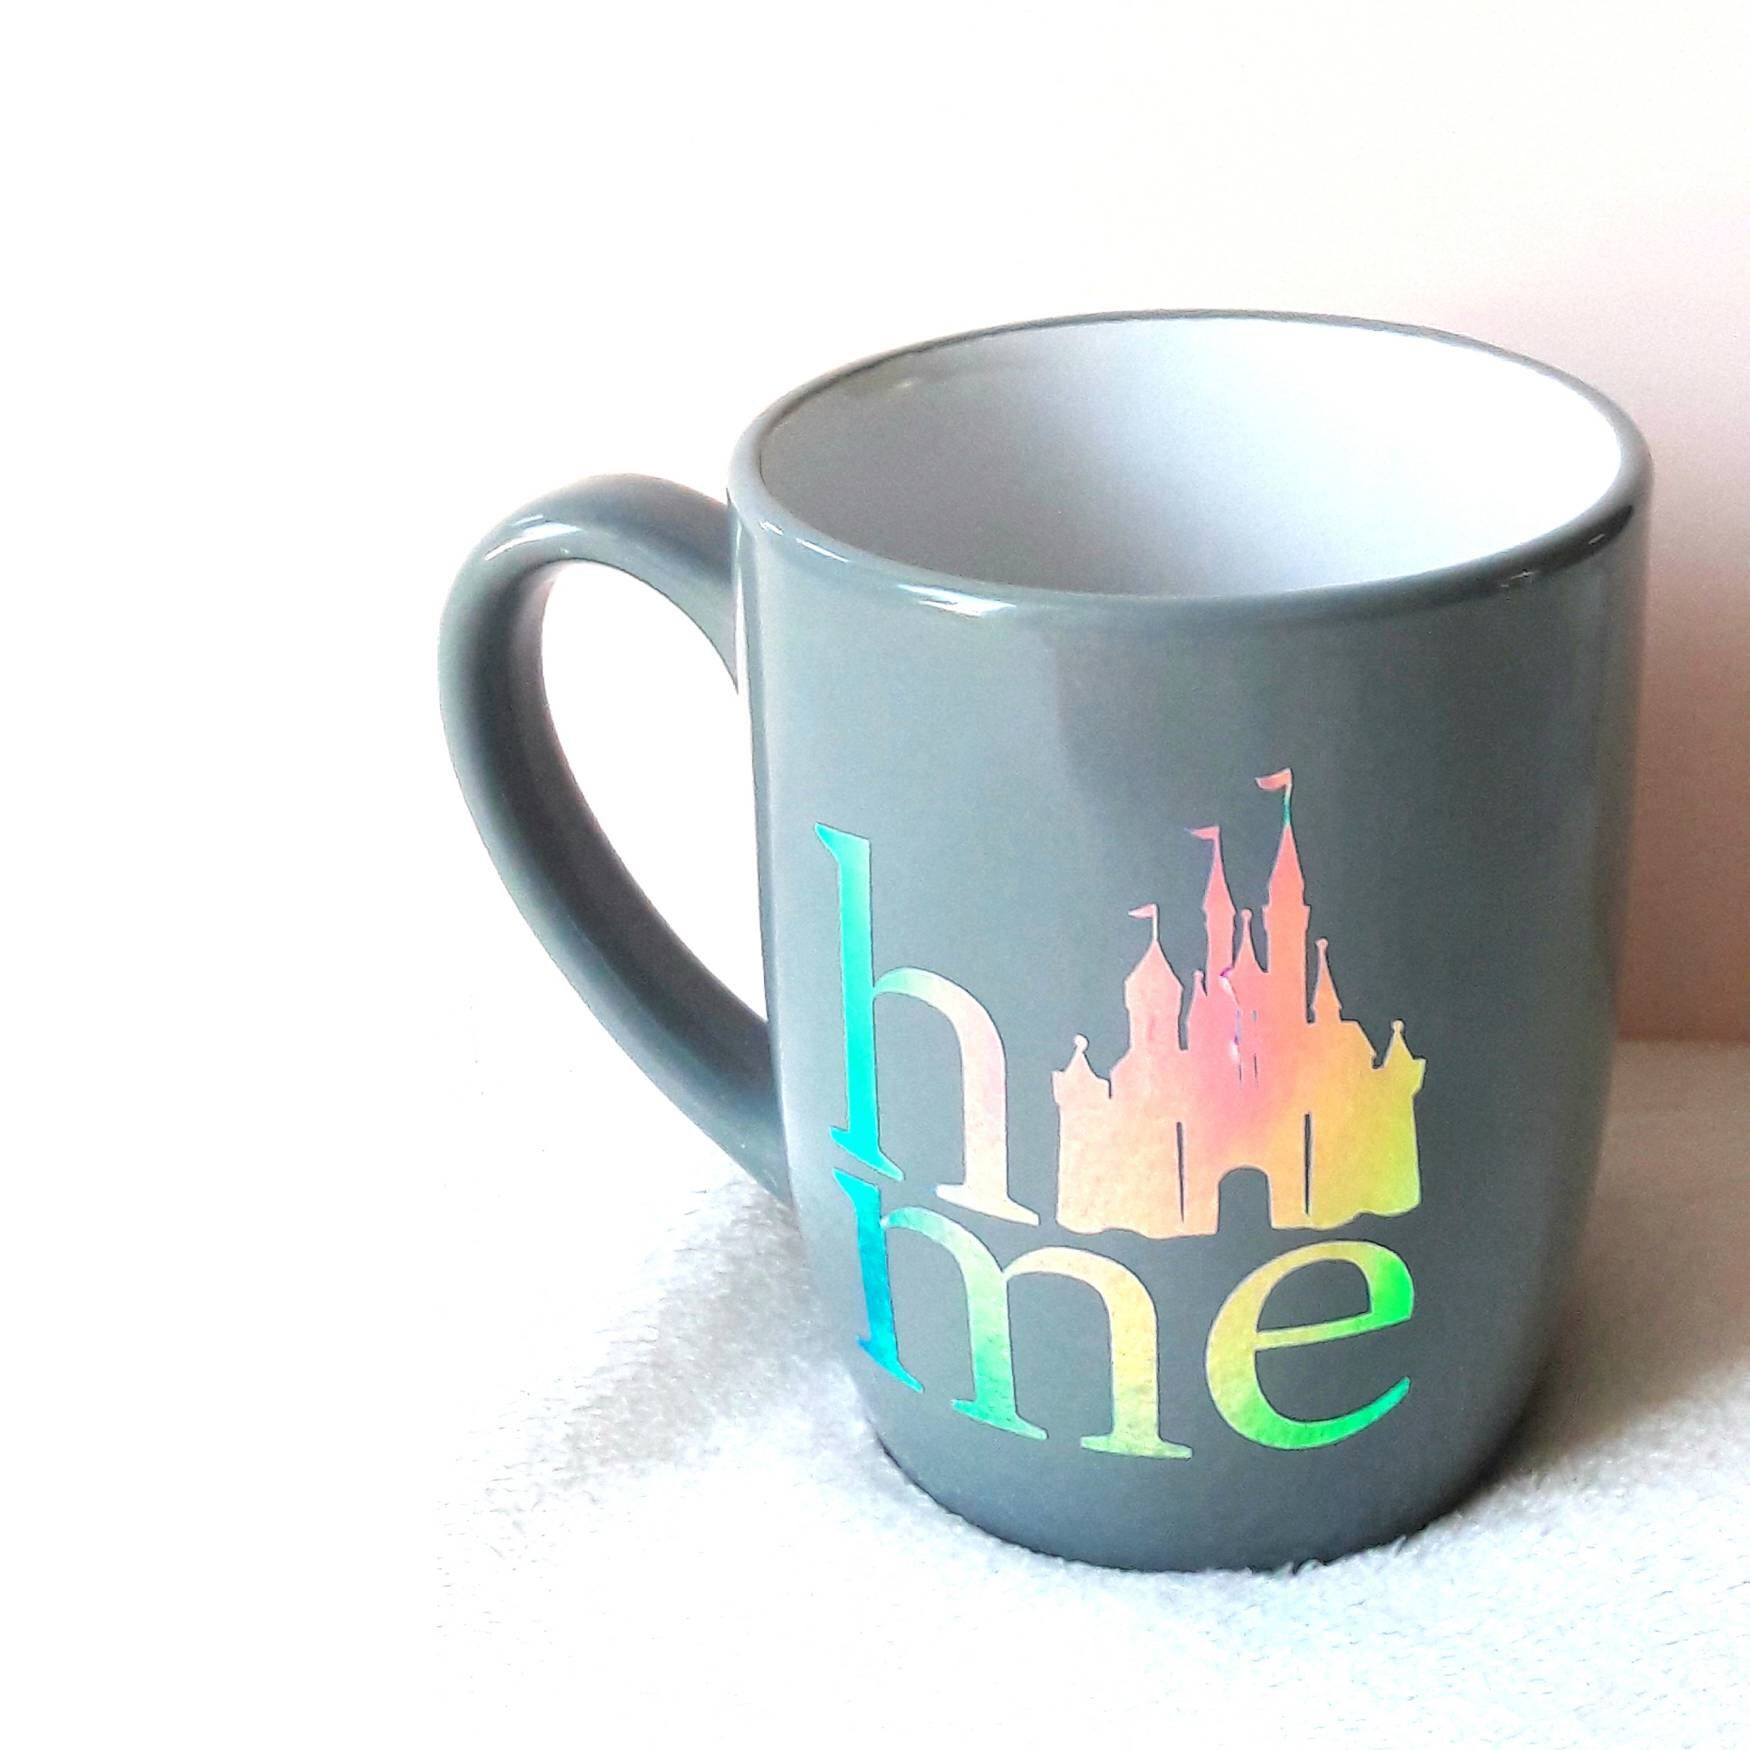 Disney Mug. Magic Kingdom. Disney World Mug. Disney World Cup. Disney Cup. Disney Gifts. Magic Kingdom. Magic Kingdom Coffee Mug #disneycups